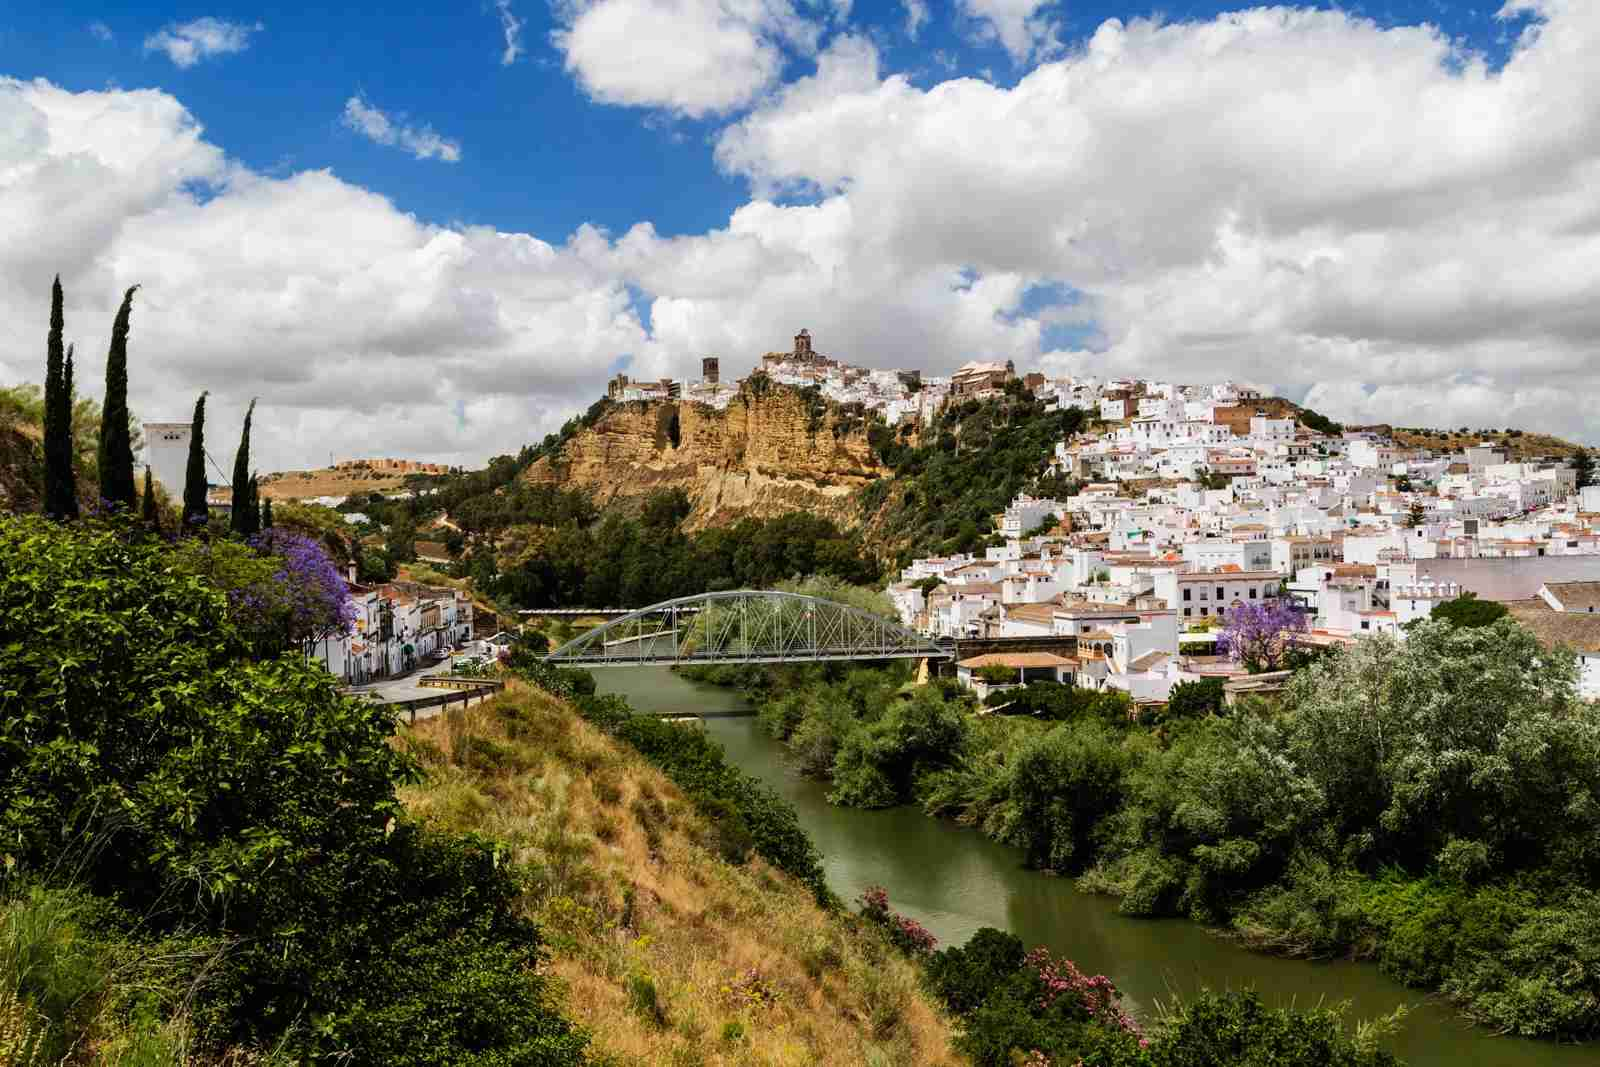 Arcos de la Frontera, Andalusia, Spain. (Photo by Jeremy Woodhouse/Getty Images)